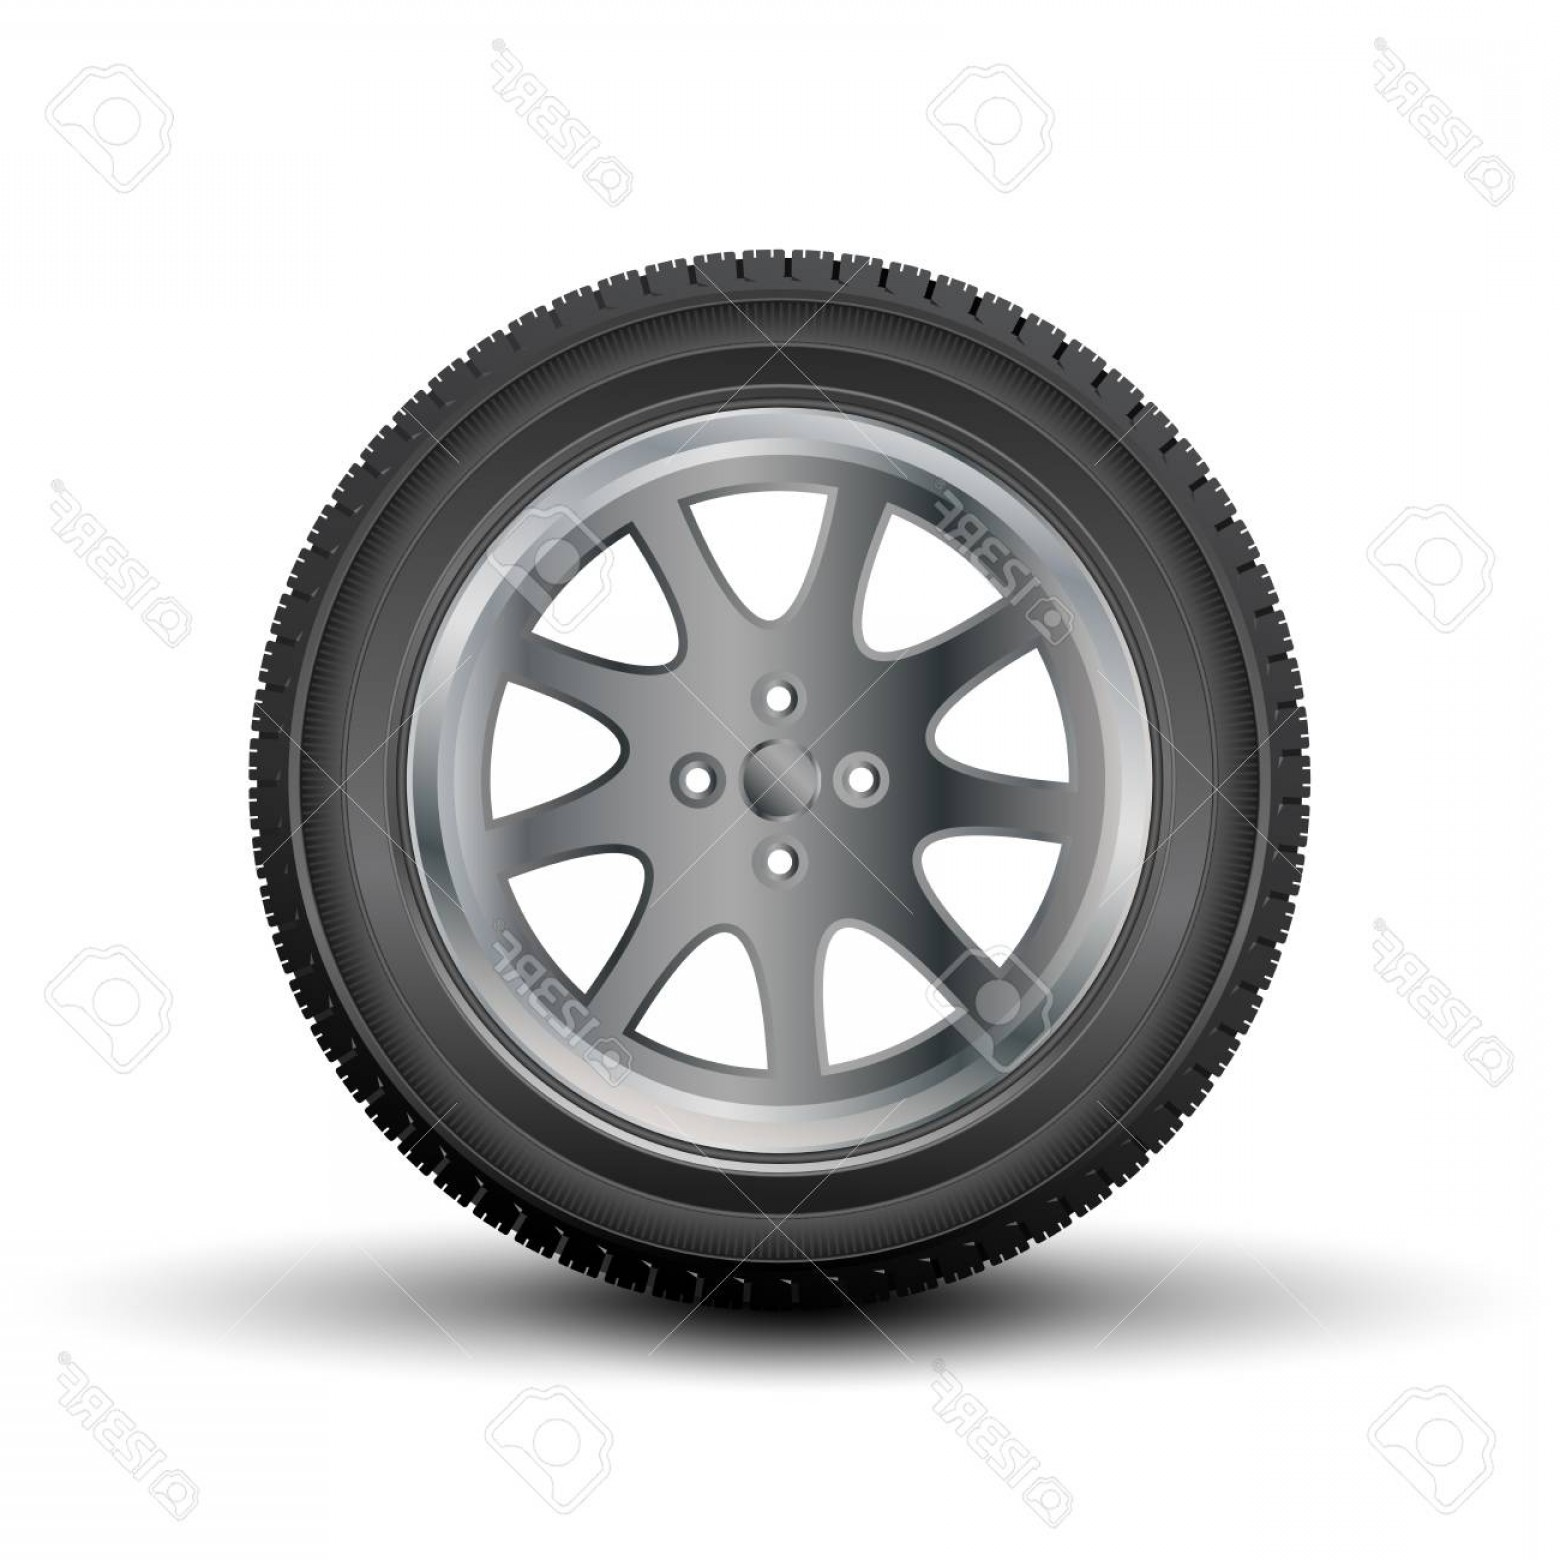 1560x1560 Photocar Tire With A Disk On A White Background Vector Lazttweet